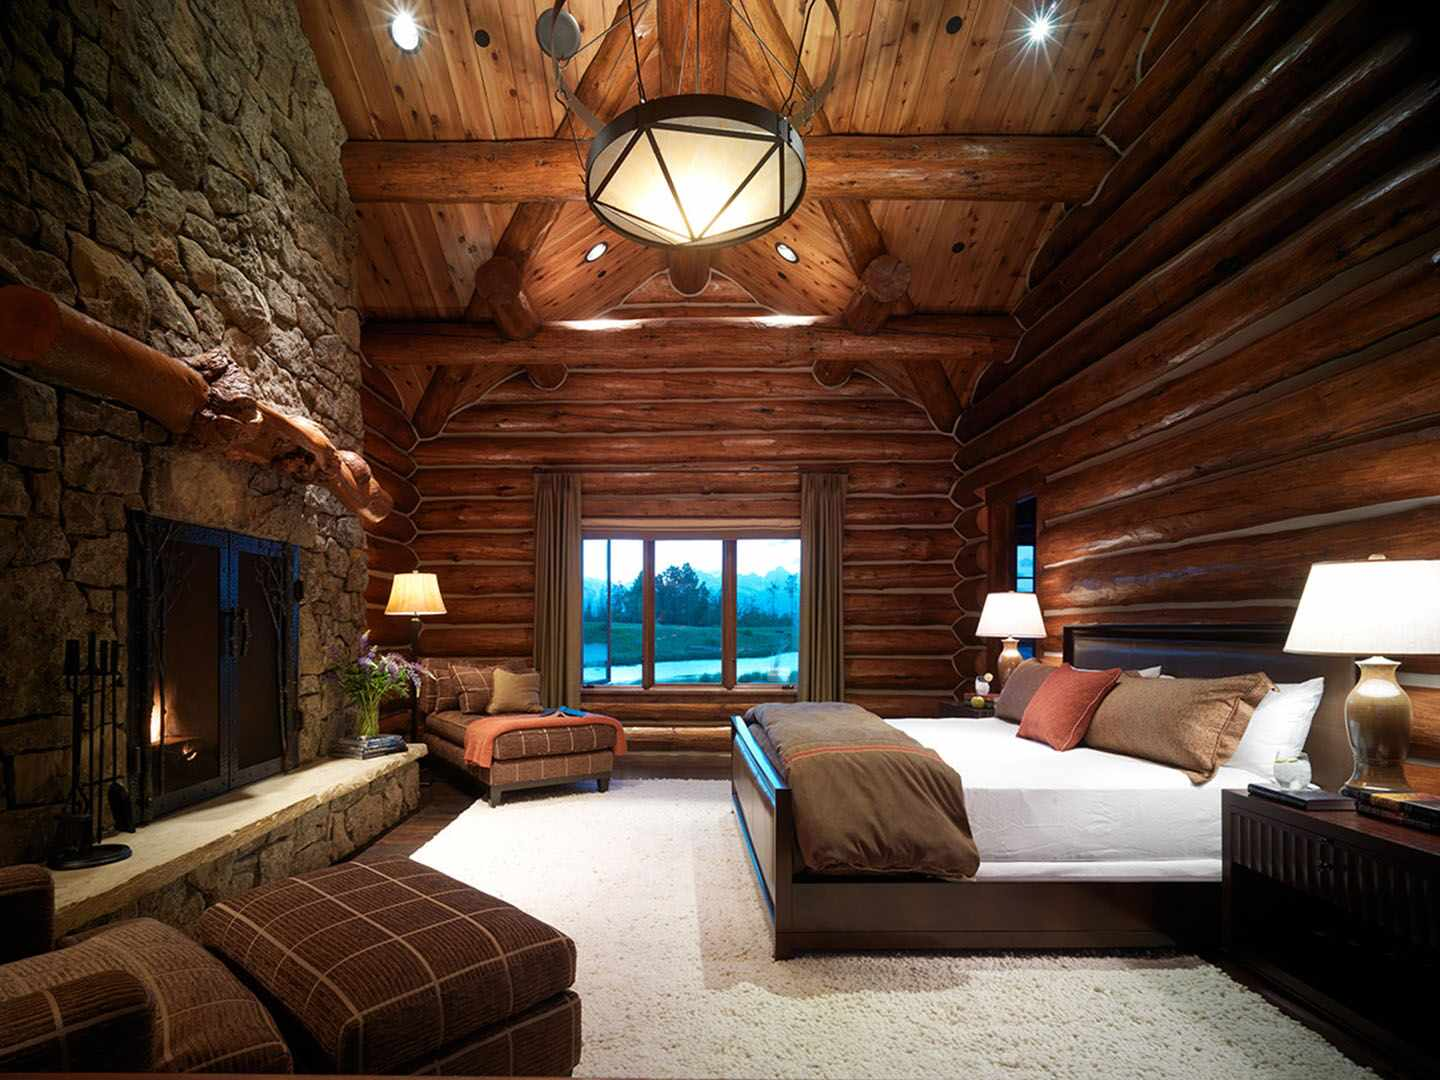 15 Wicked Rustic Bedroom Designs That Will Make You Want Them on Room Ideas For Small Rooms  id=49905